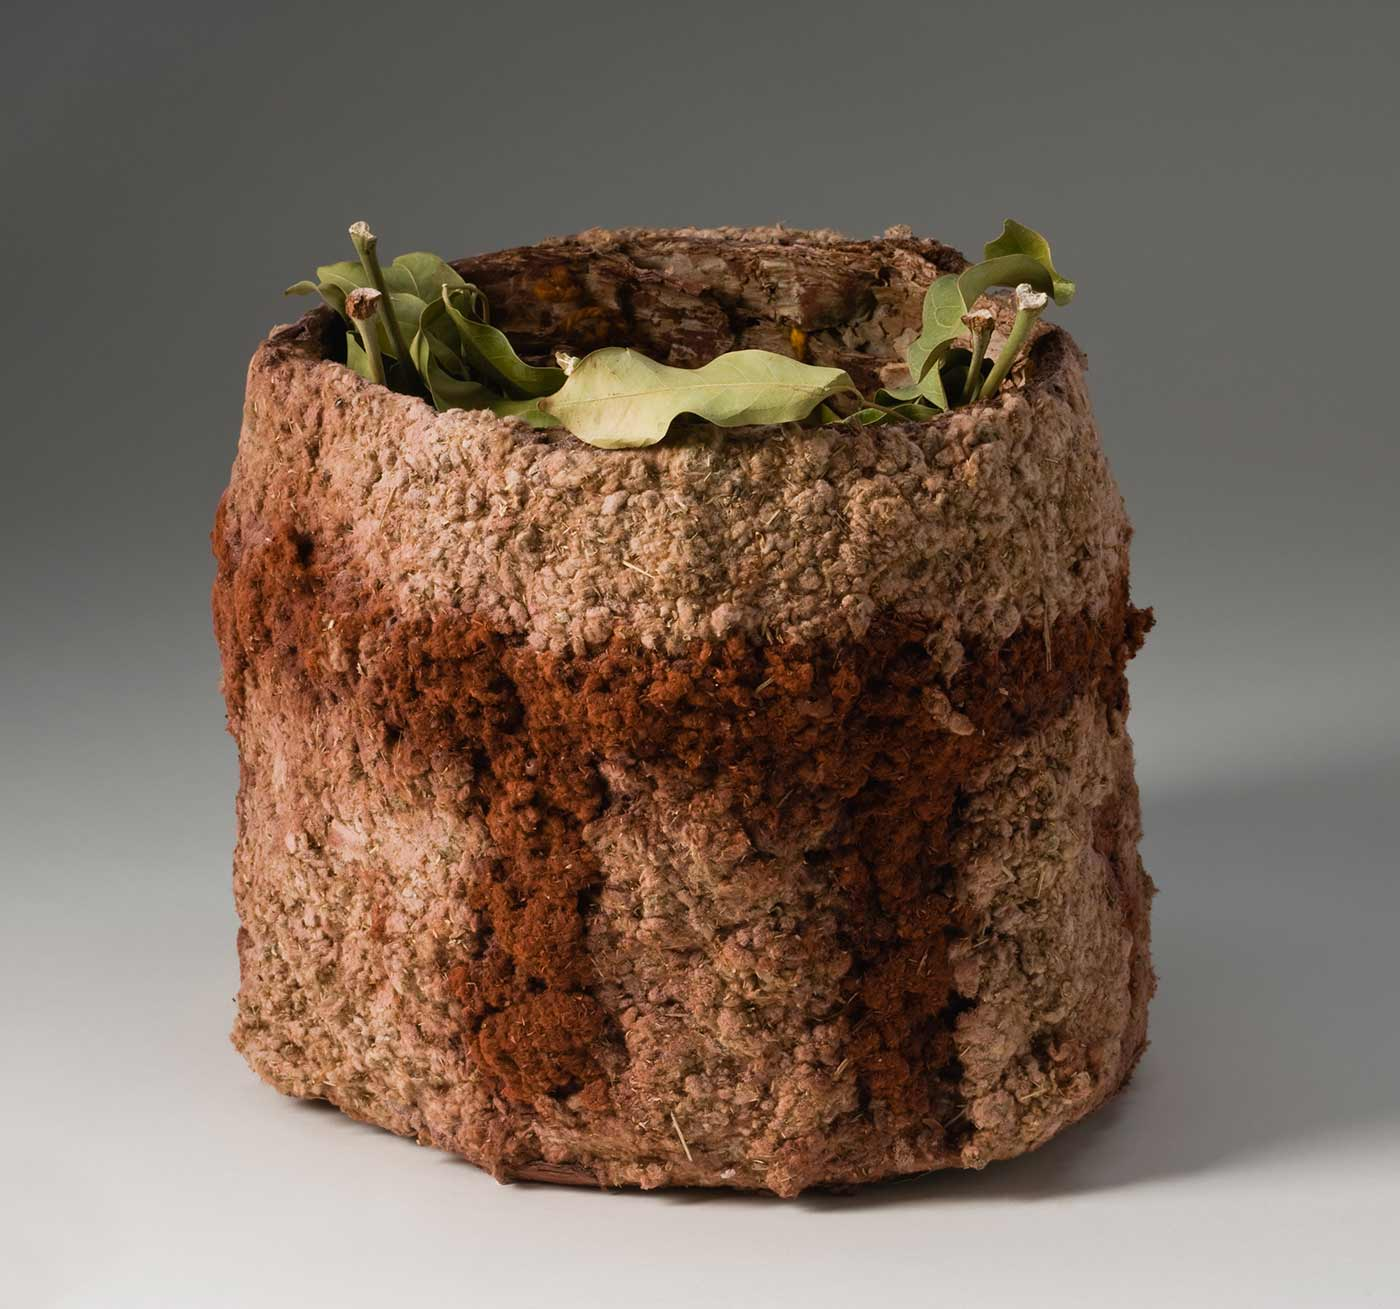 A brown rough bark cylinder covered with an outer layer of cream downy fibre which has been decorated with a red brown pigment. The pigmented design is a horizontal band with eight evenly spaced vertical lines extending from the band to one edge. The inner bark surface has a patchy covering of red brown pigment. The cylinder is filled with light green leaves. - click to view larger image